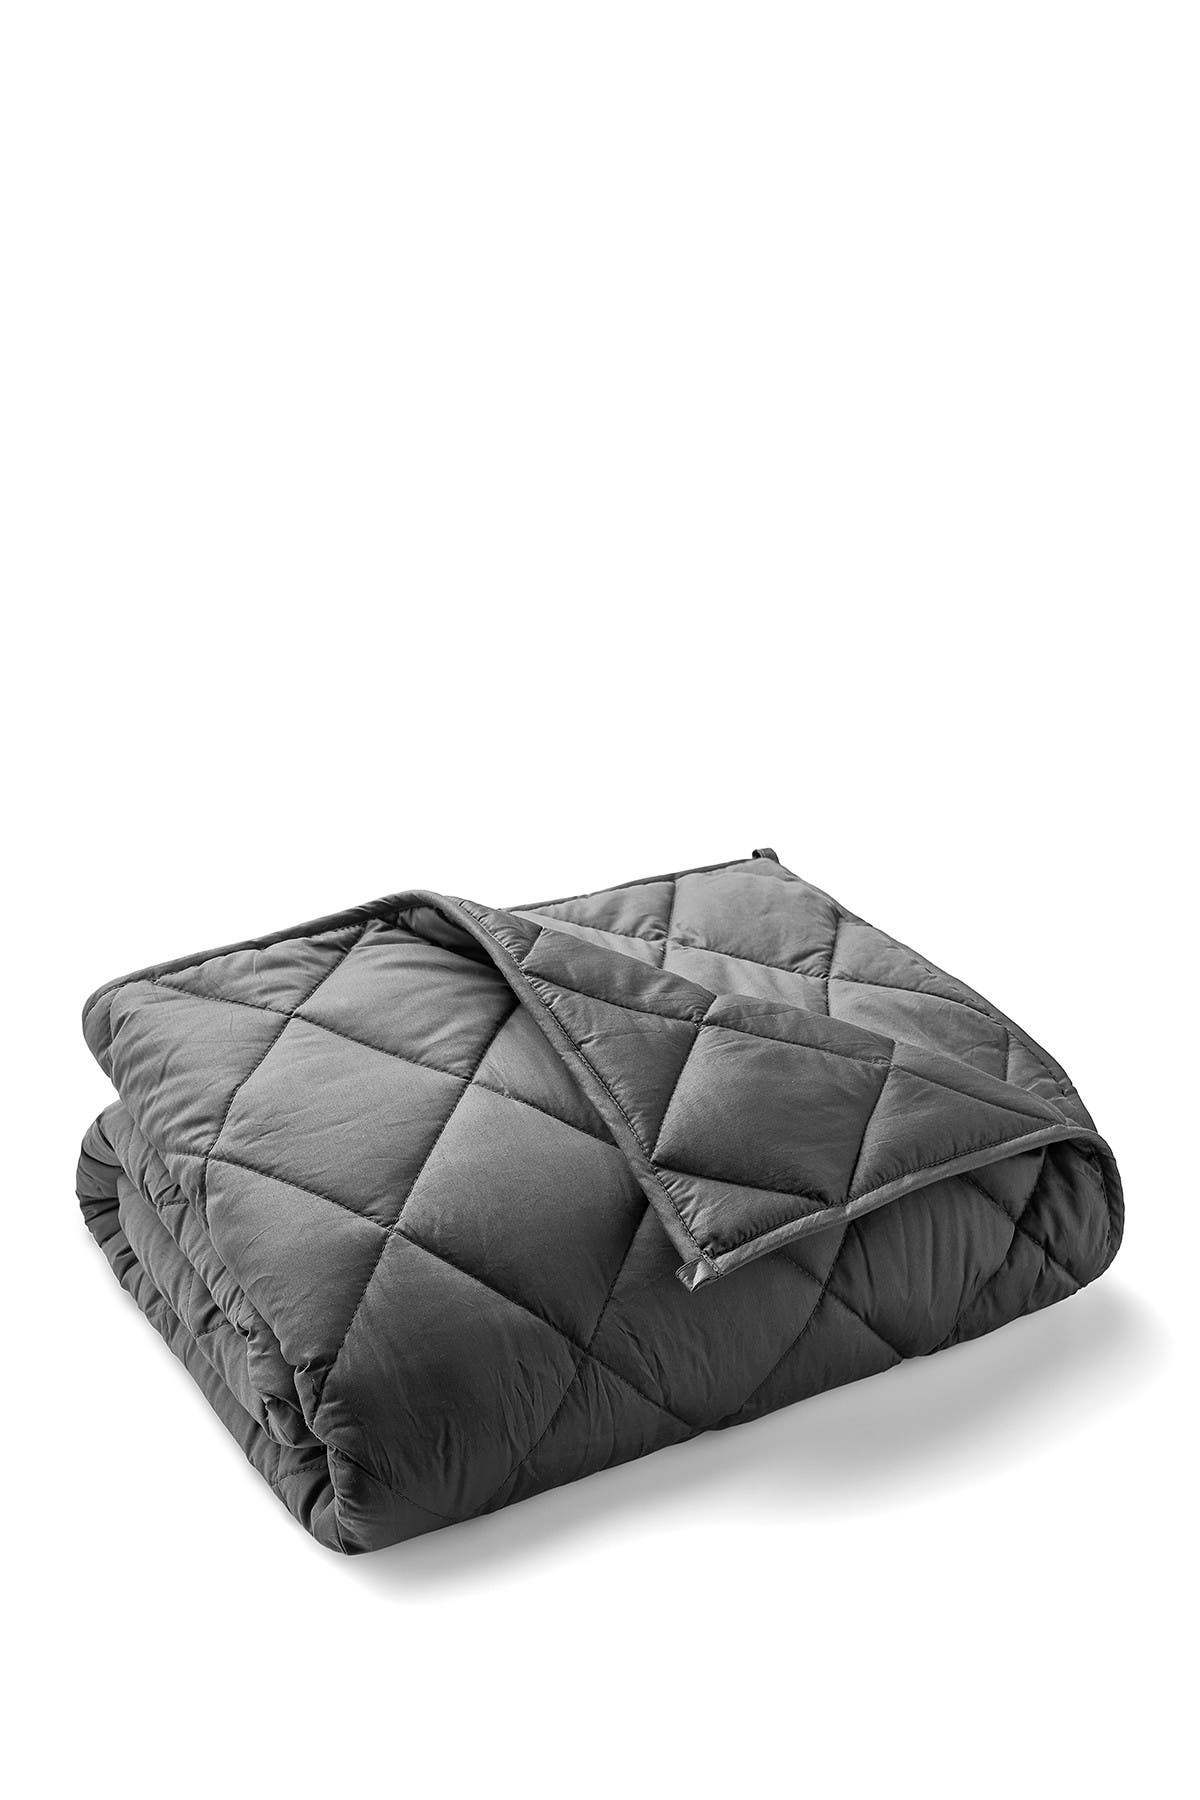 """Image of Melange Home Charcoal Cotton Weighted Throw - 48""""x72"""""""